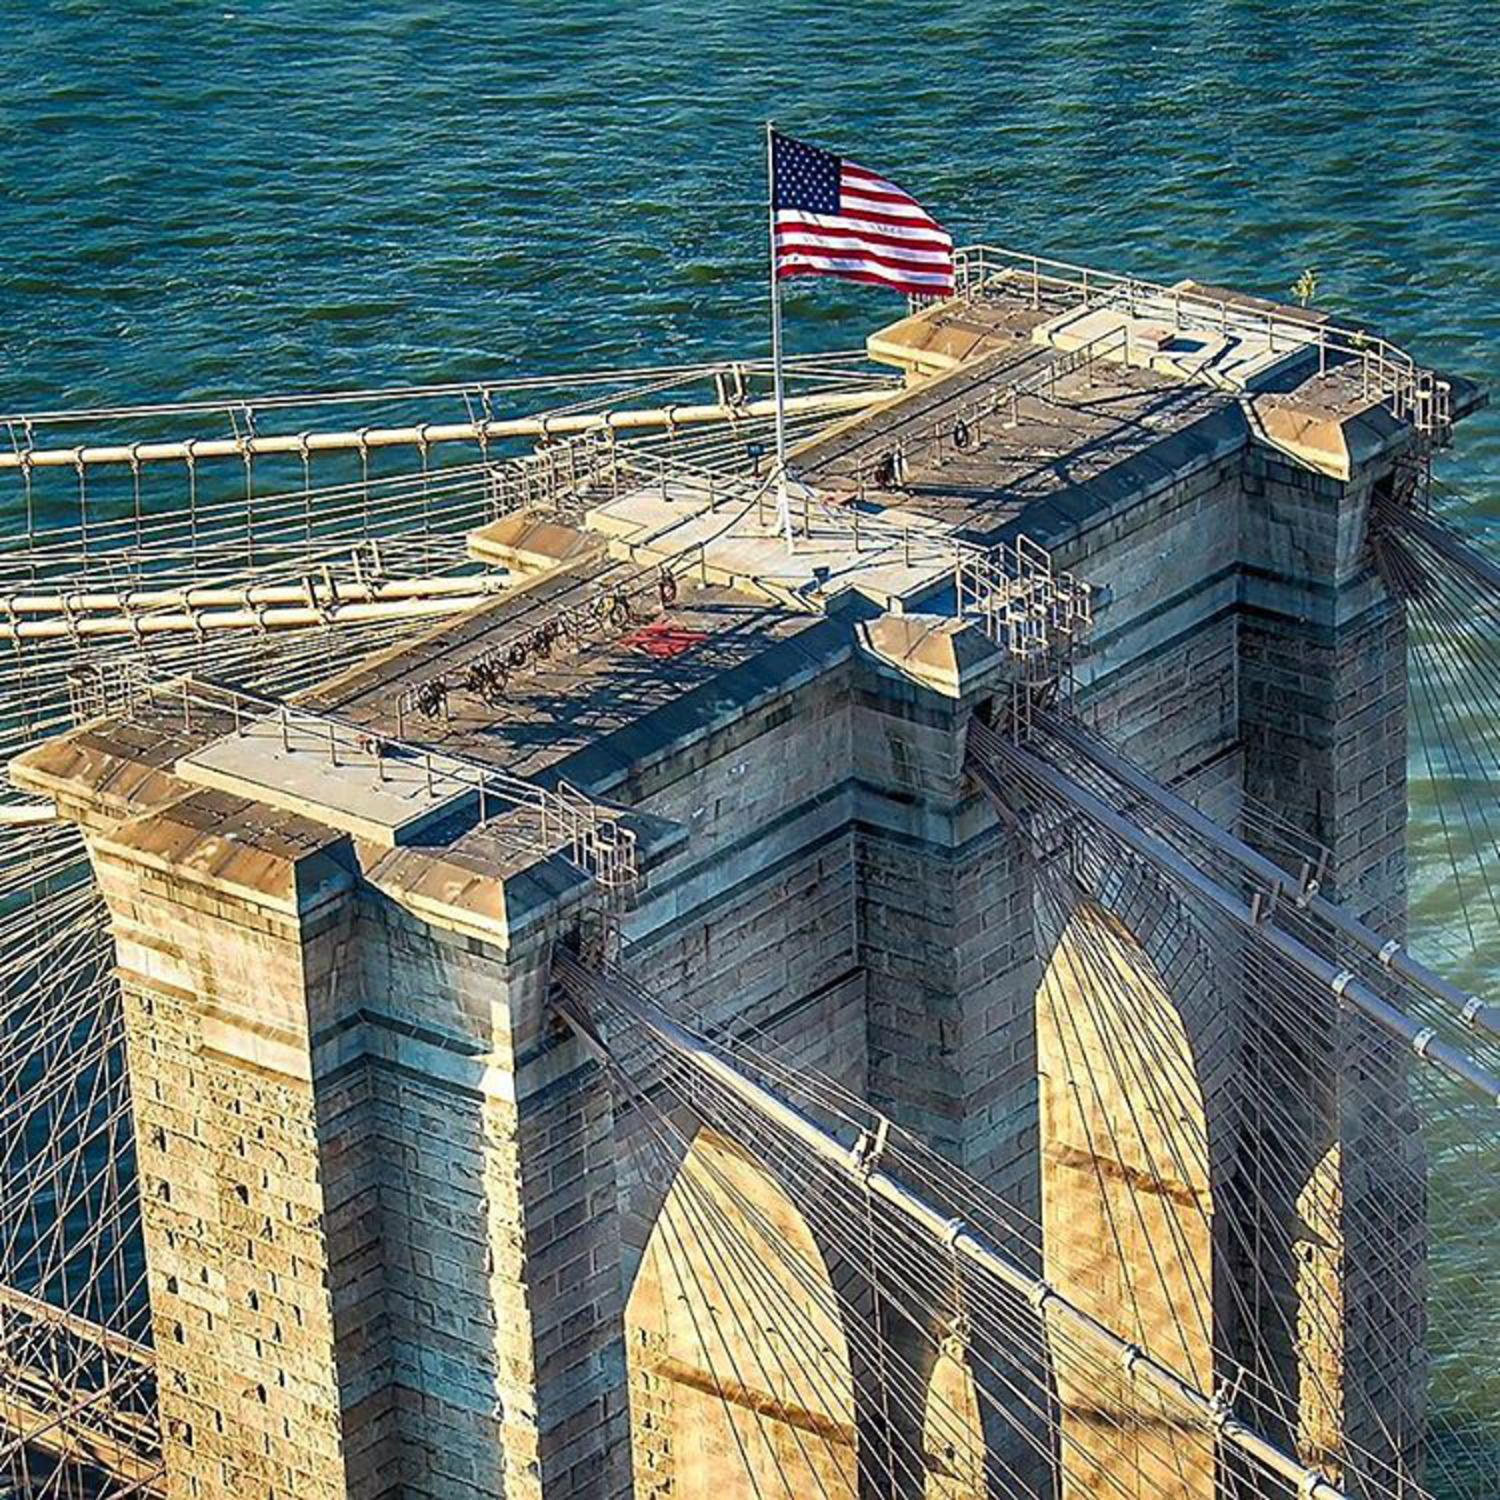 #oldglory soaking up another #nyc sunset atop the #brooklynbridge ©rdp3photography @wingsairheli .. #canon_photos #team_canon #teamcanon #nyc #ny #what_i_saw_in_nyc #nycity #instanyc #picturesofnewyork #colorofnewyork #nyloveyou #photos_of_new_york #photosofnewyork #bridge #bridgephotography #sunset #america #newyork #icapture_nyc #topnewyorkphoto #nycinstagram #thecreatorclass #illgrammers #artofvisuals #heatercentral #meistershots #nycityworld